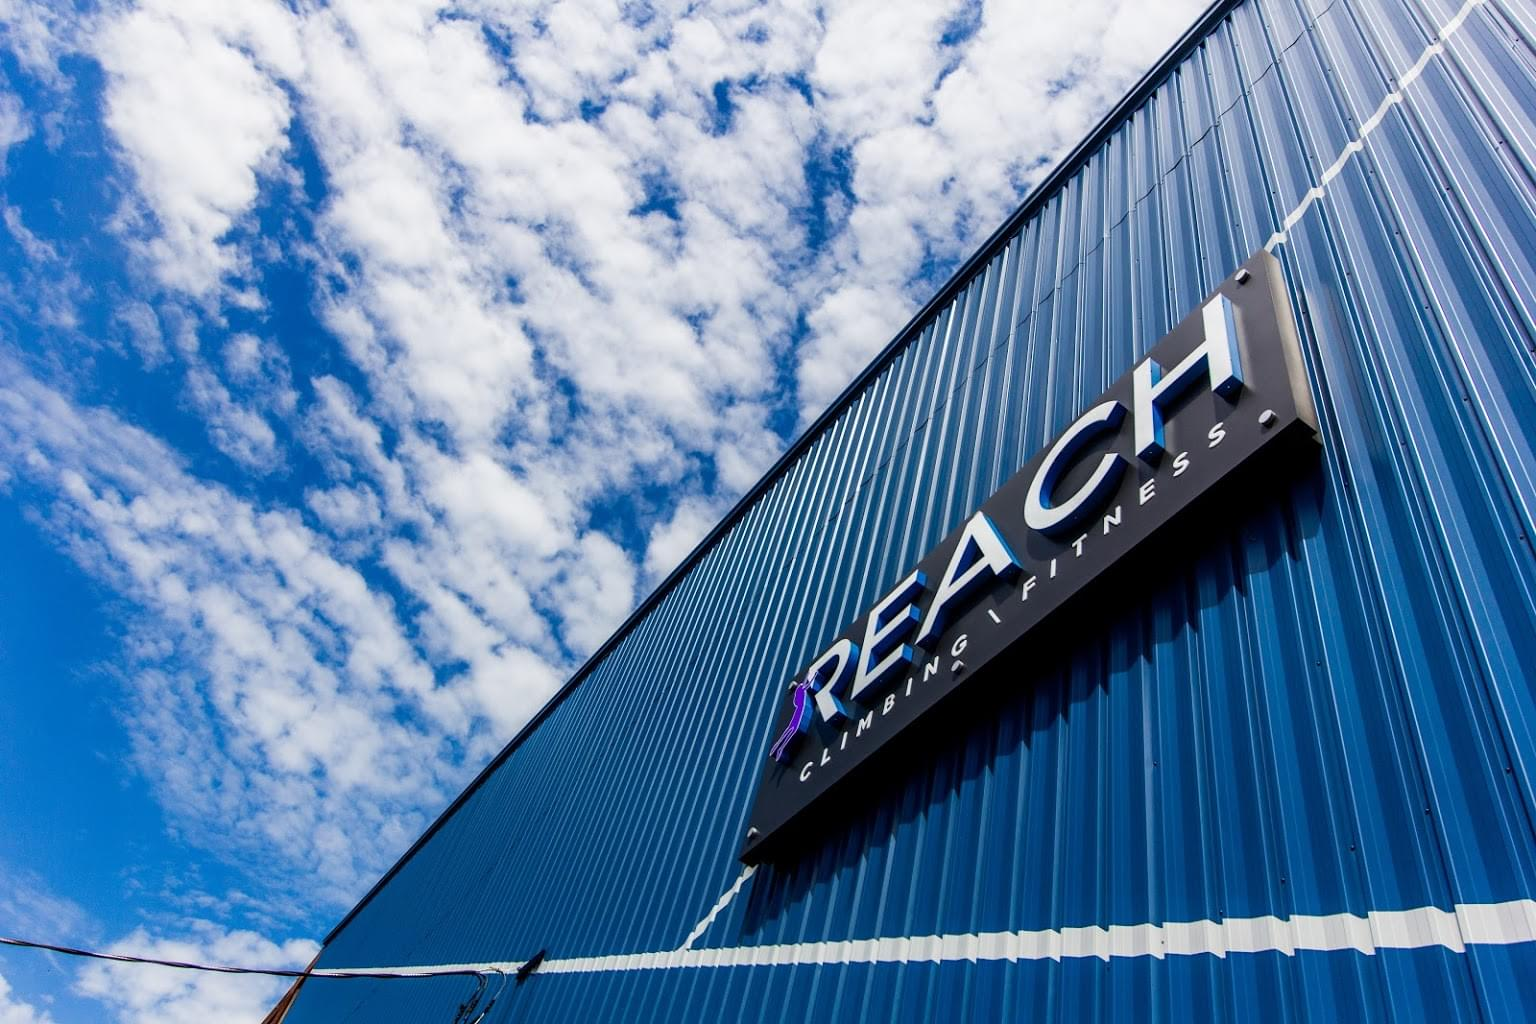 Reach Climbing + Fitness rock-climbing gym in Bridgeport, PA